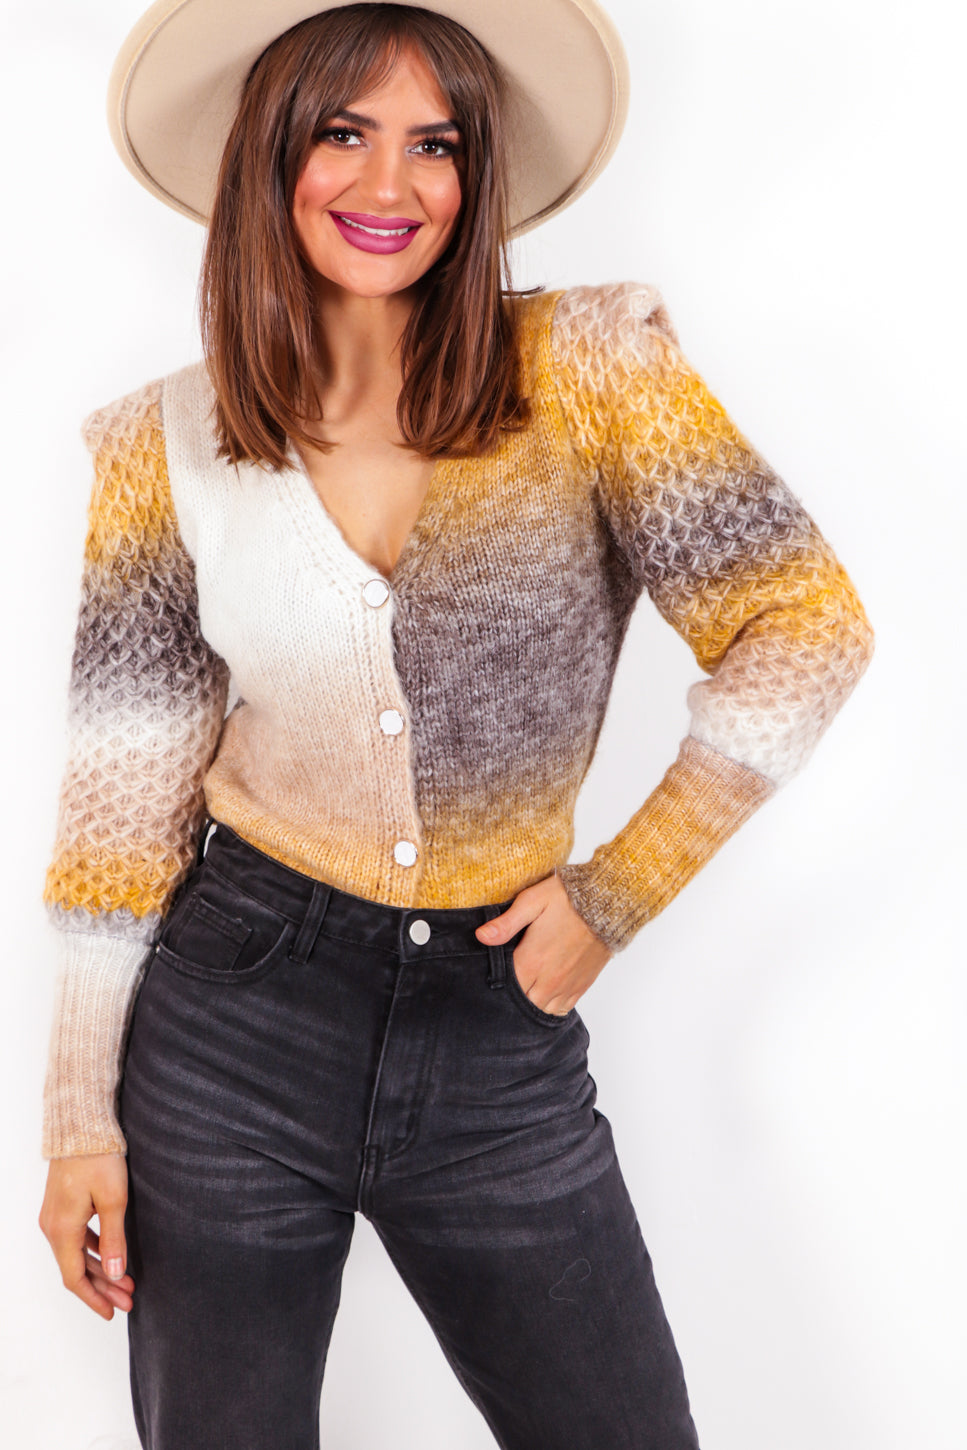 Sunset State Of Mind - Mustard Ombre Knitted Cardigan